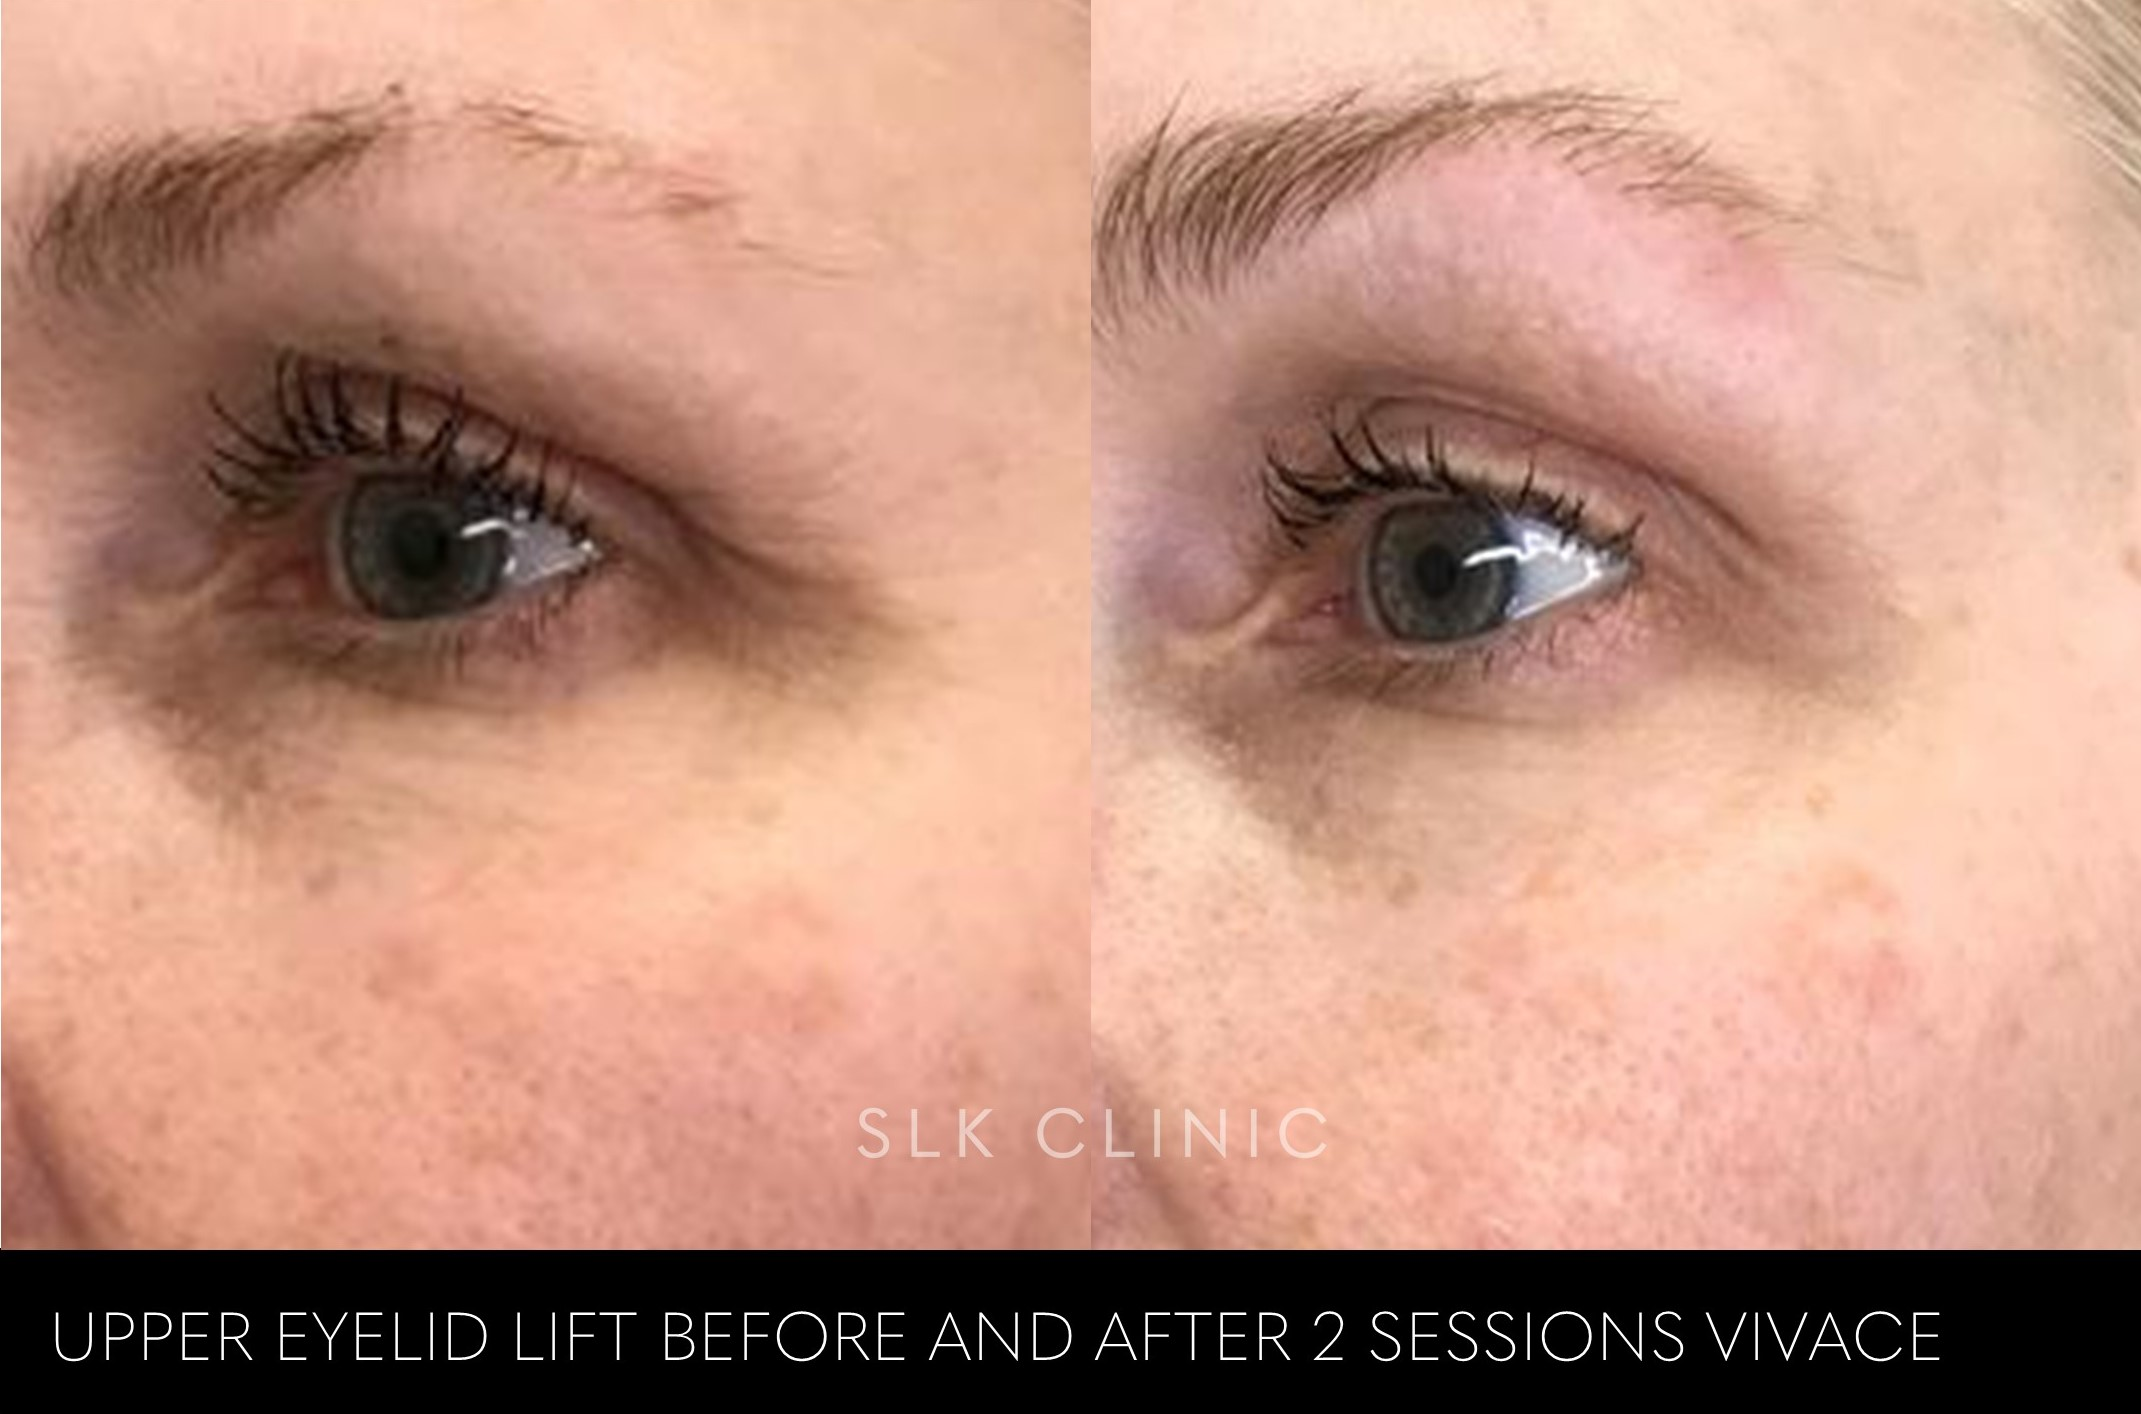 Eyelid lift after 2 sessions of Vivace skin tightening and botox eyebrow lift nashville tennessee